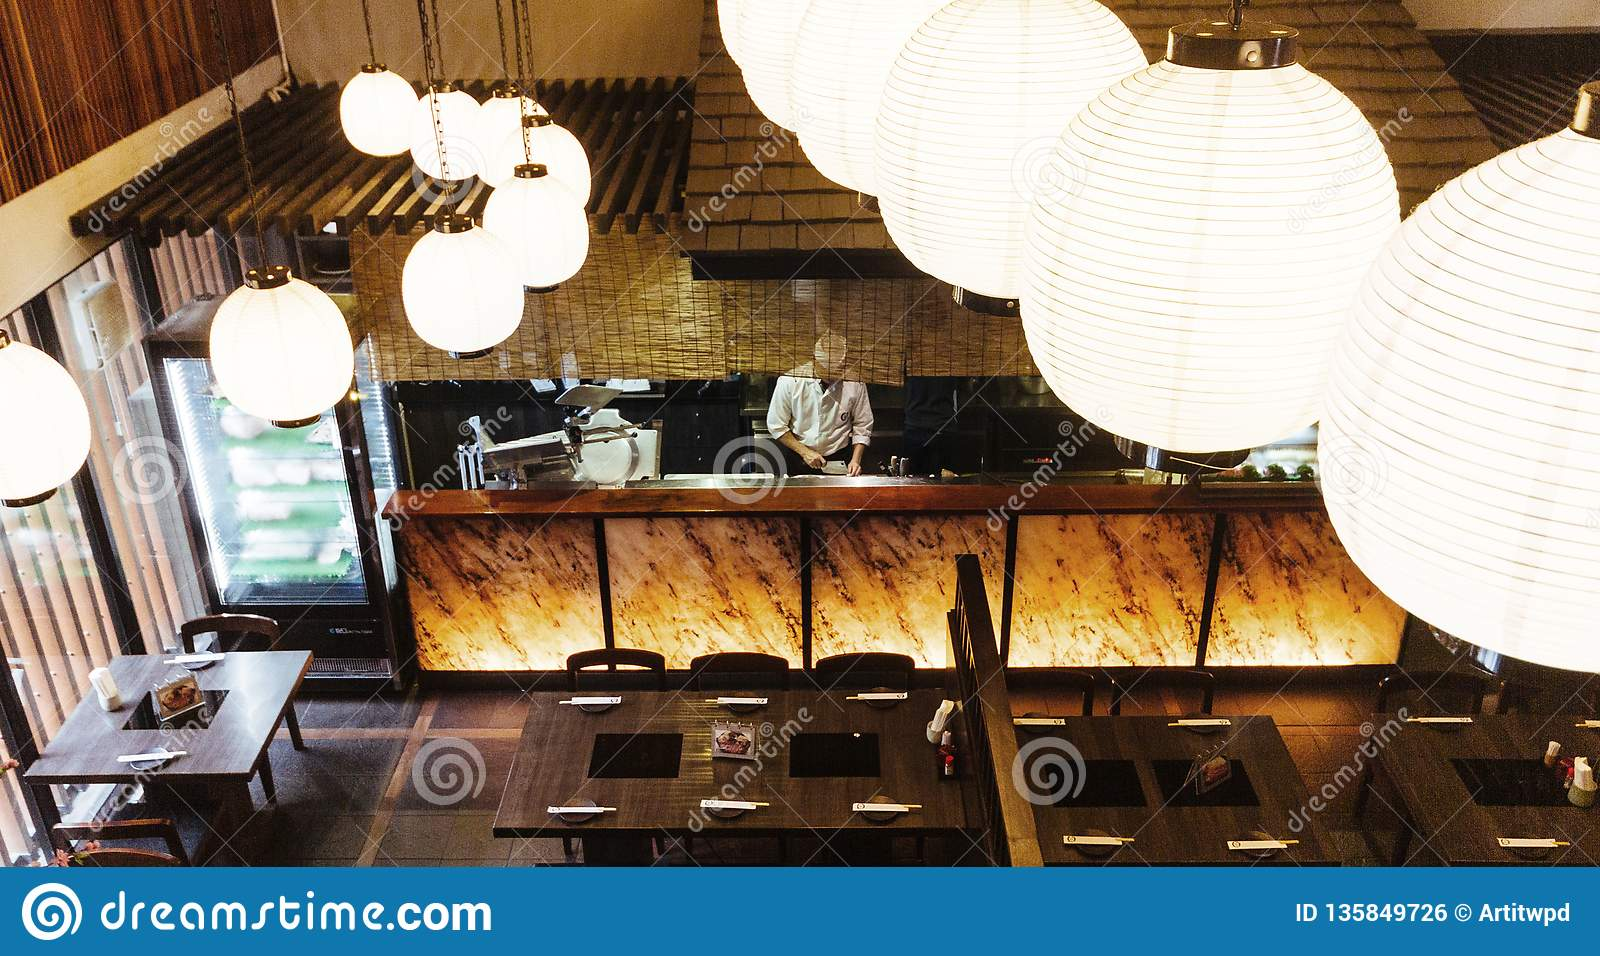 Japanese Restaurant Counter With Chef Shoot From Second Floor With Lamps In Foreground Stock Photo Image Of Lamp Cuisine 135849726